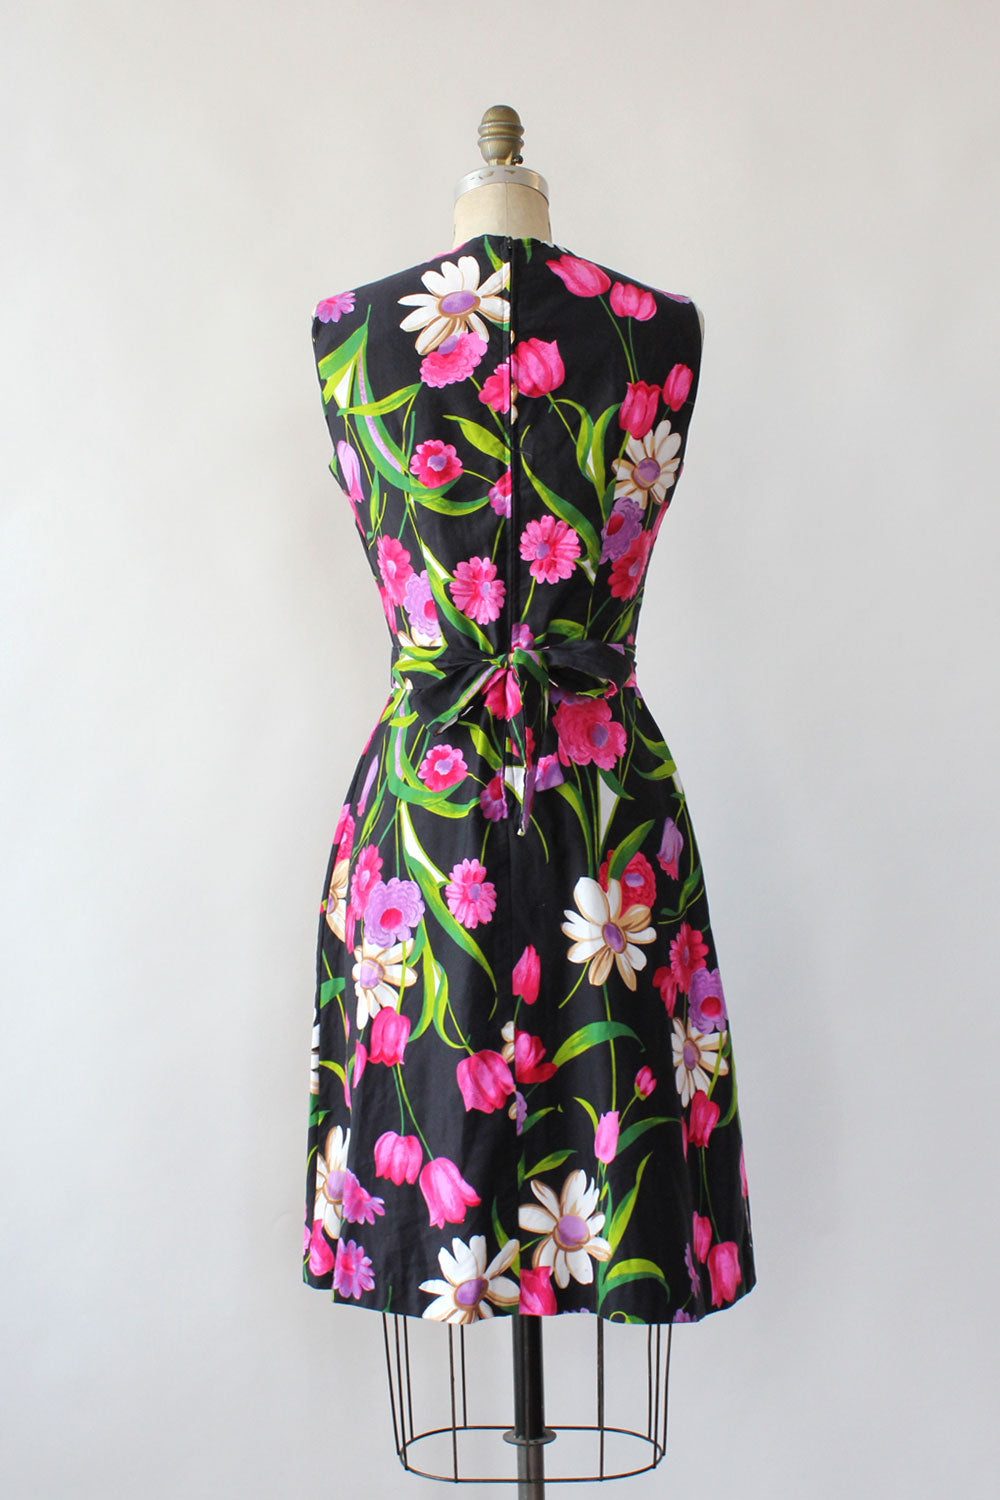 Vibrant Floral Cotton Pocket Dress S/M